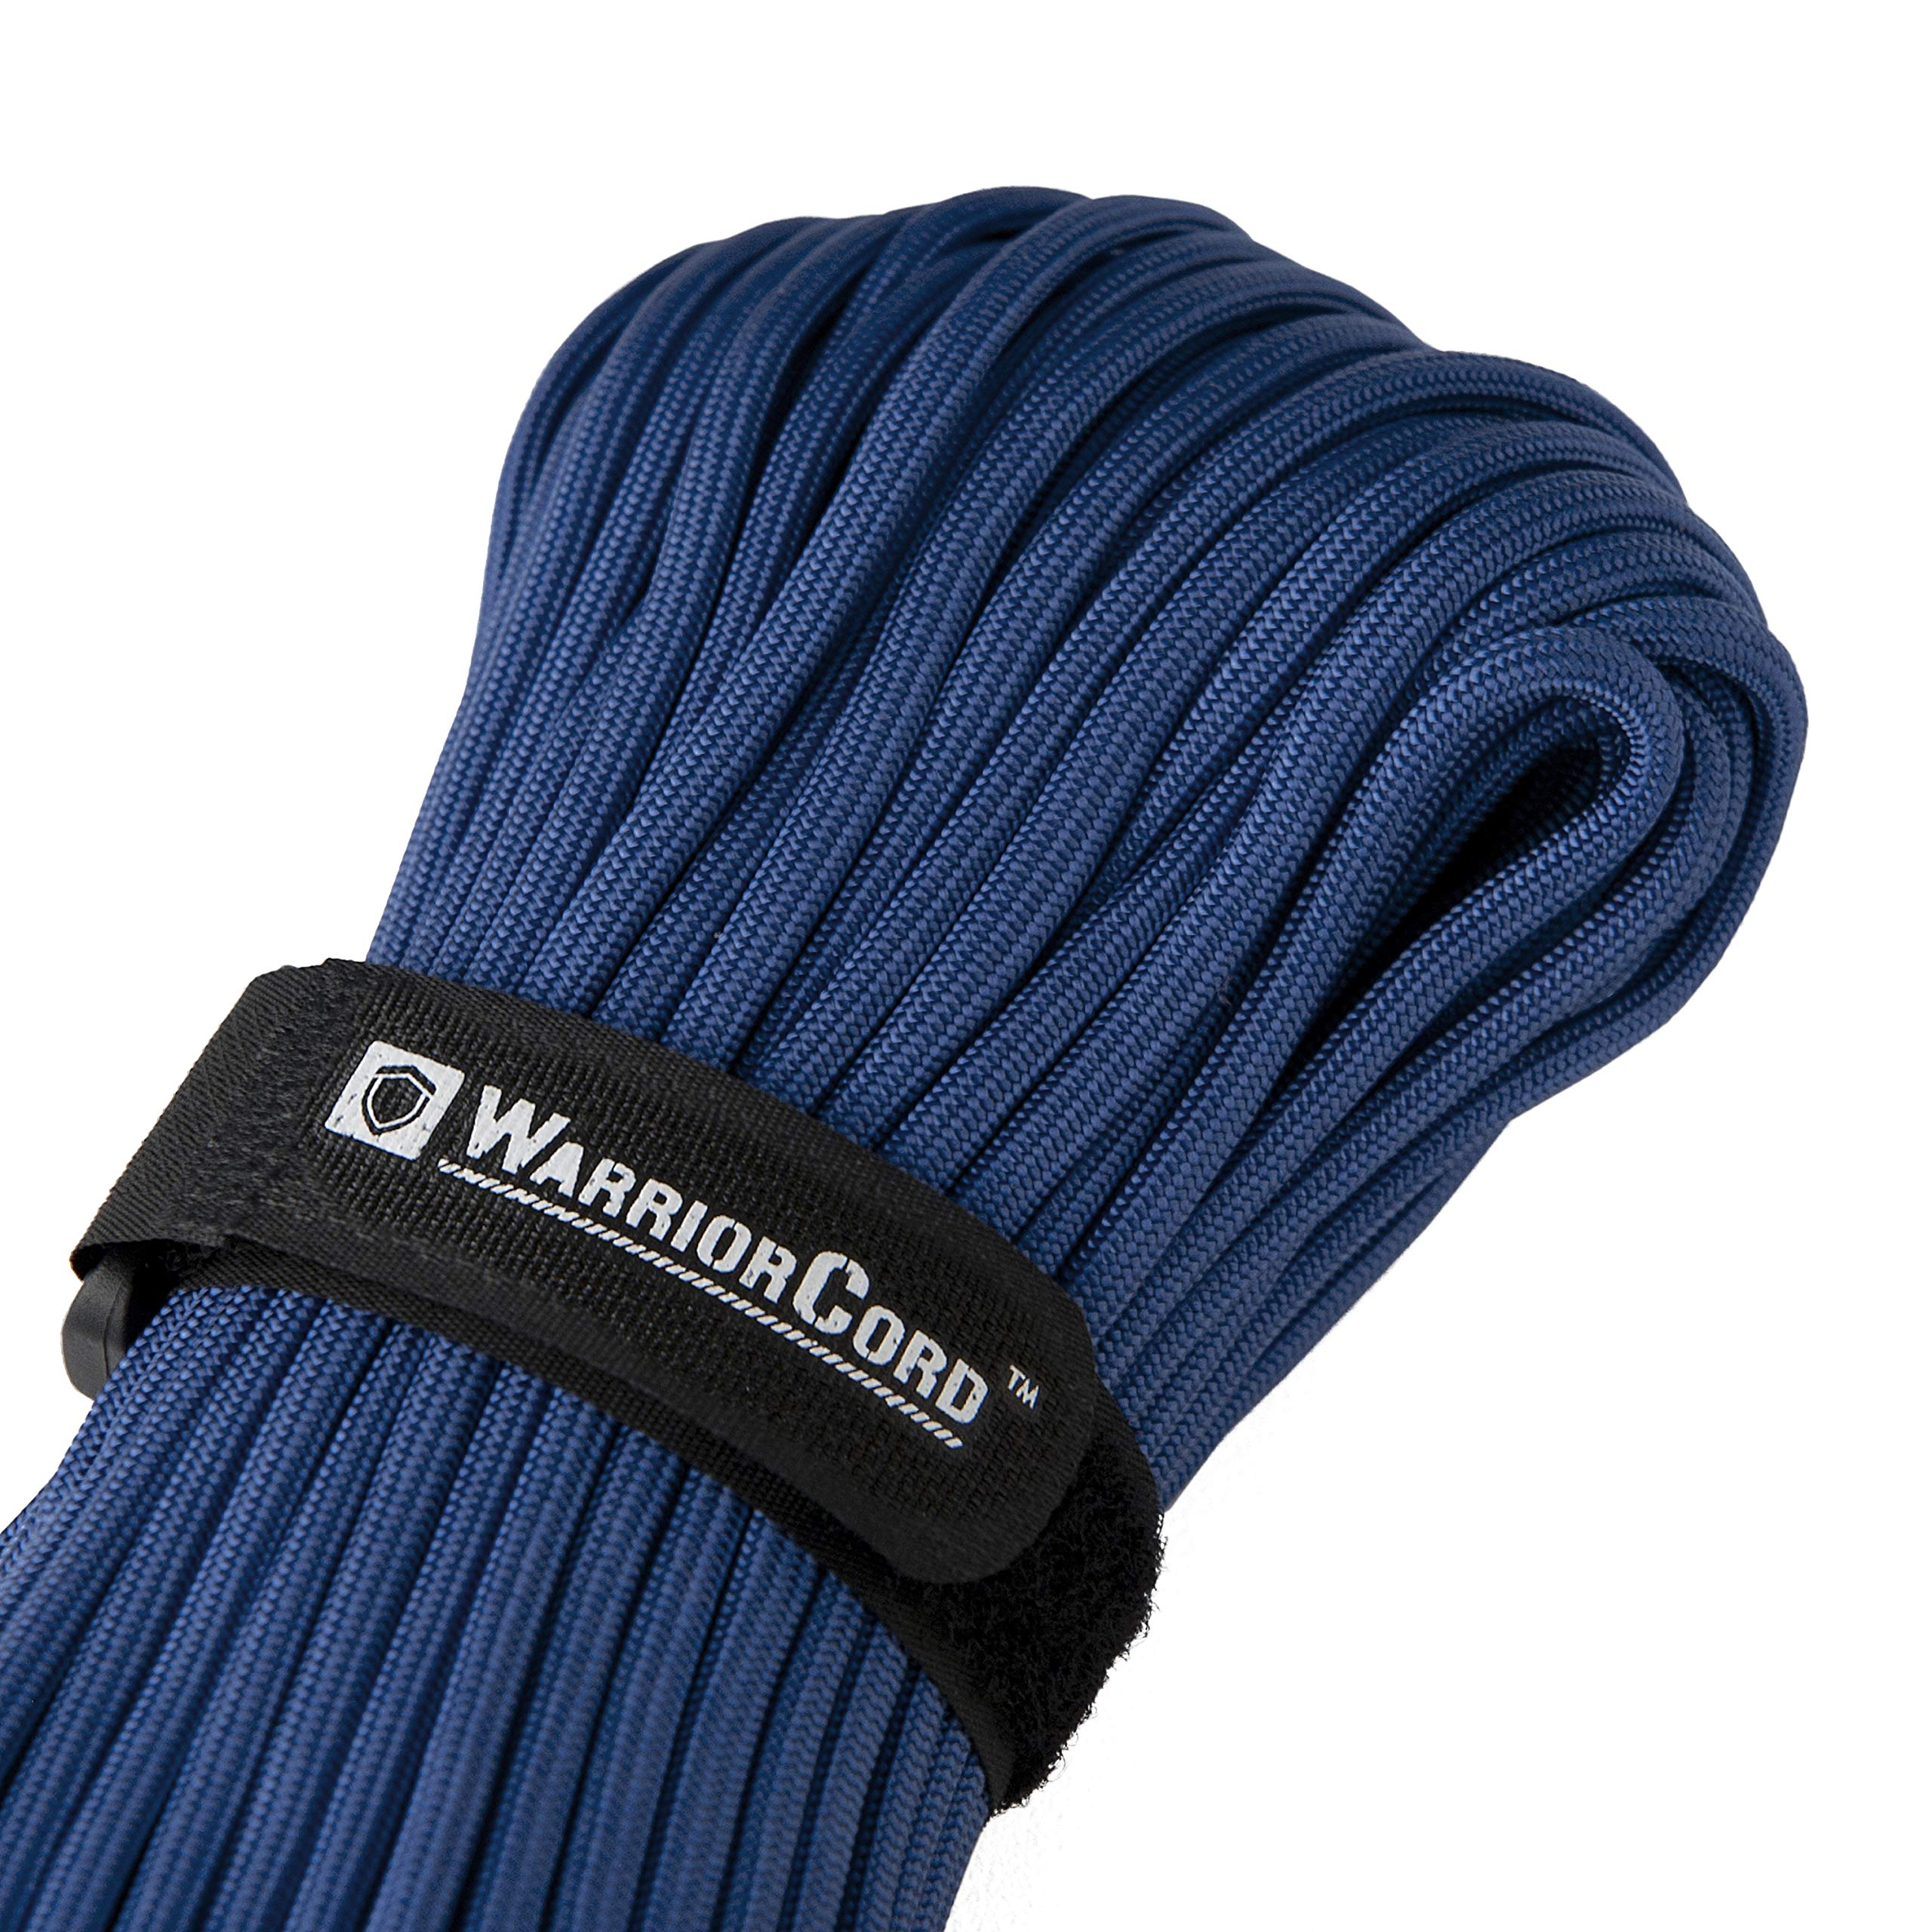 TITAN WarriorCord | ROYAL BLUE | 103 CONTINUOUS FEET | Exceeds Authentic MIL-C-5040, Type III 550 Paracord Standards. 7 Strand, 5/32'' (4mm) Diameter, Military Parachute Cord.